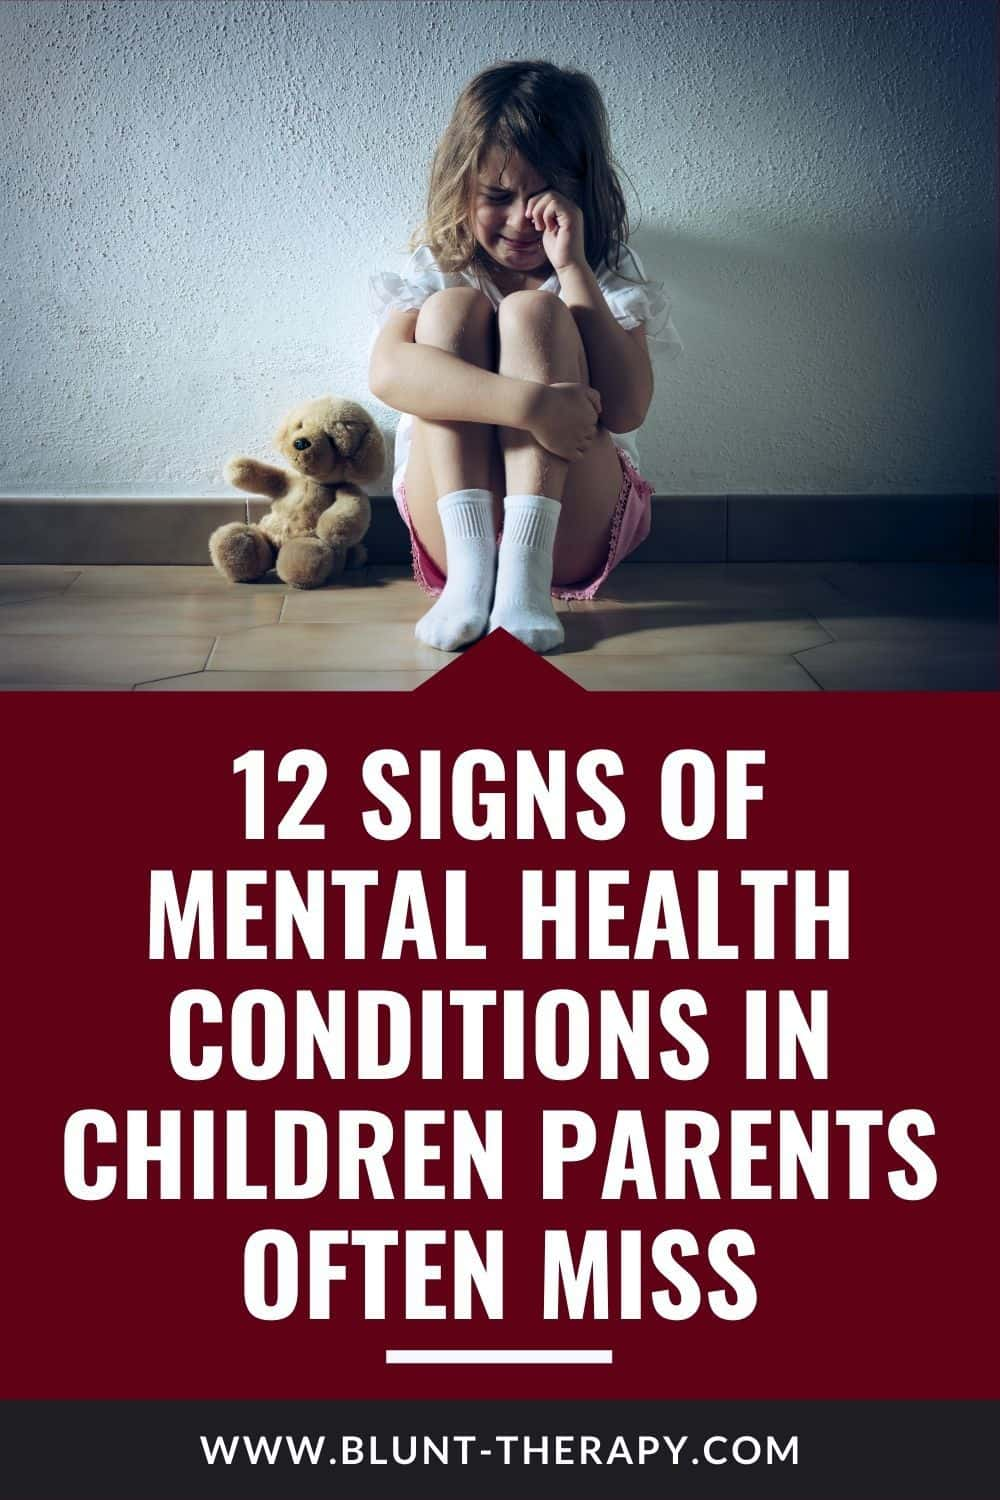 Early Warning signs for children with Mental Illness